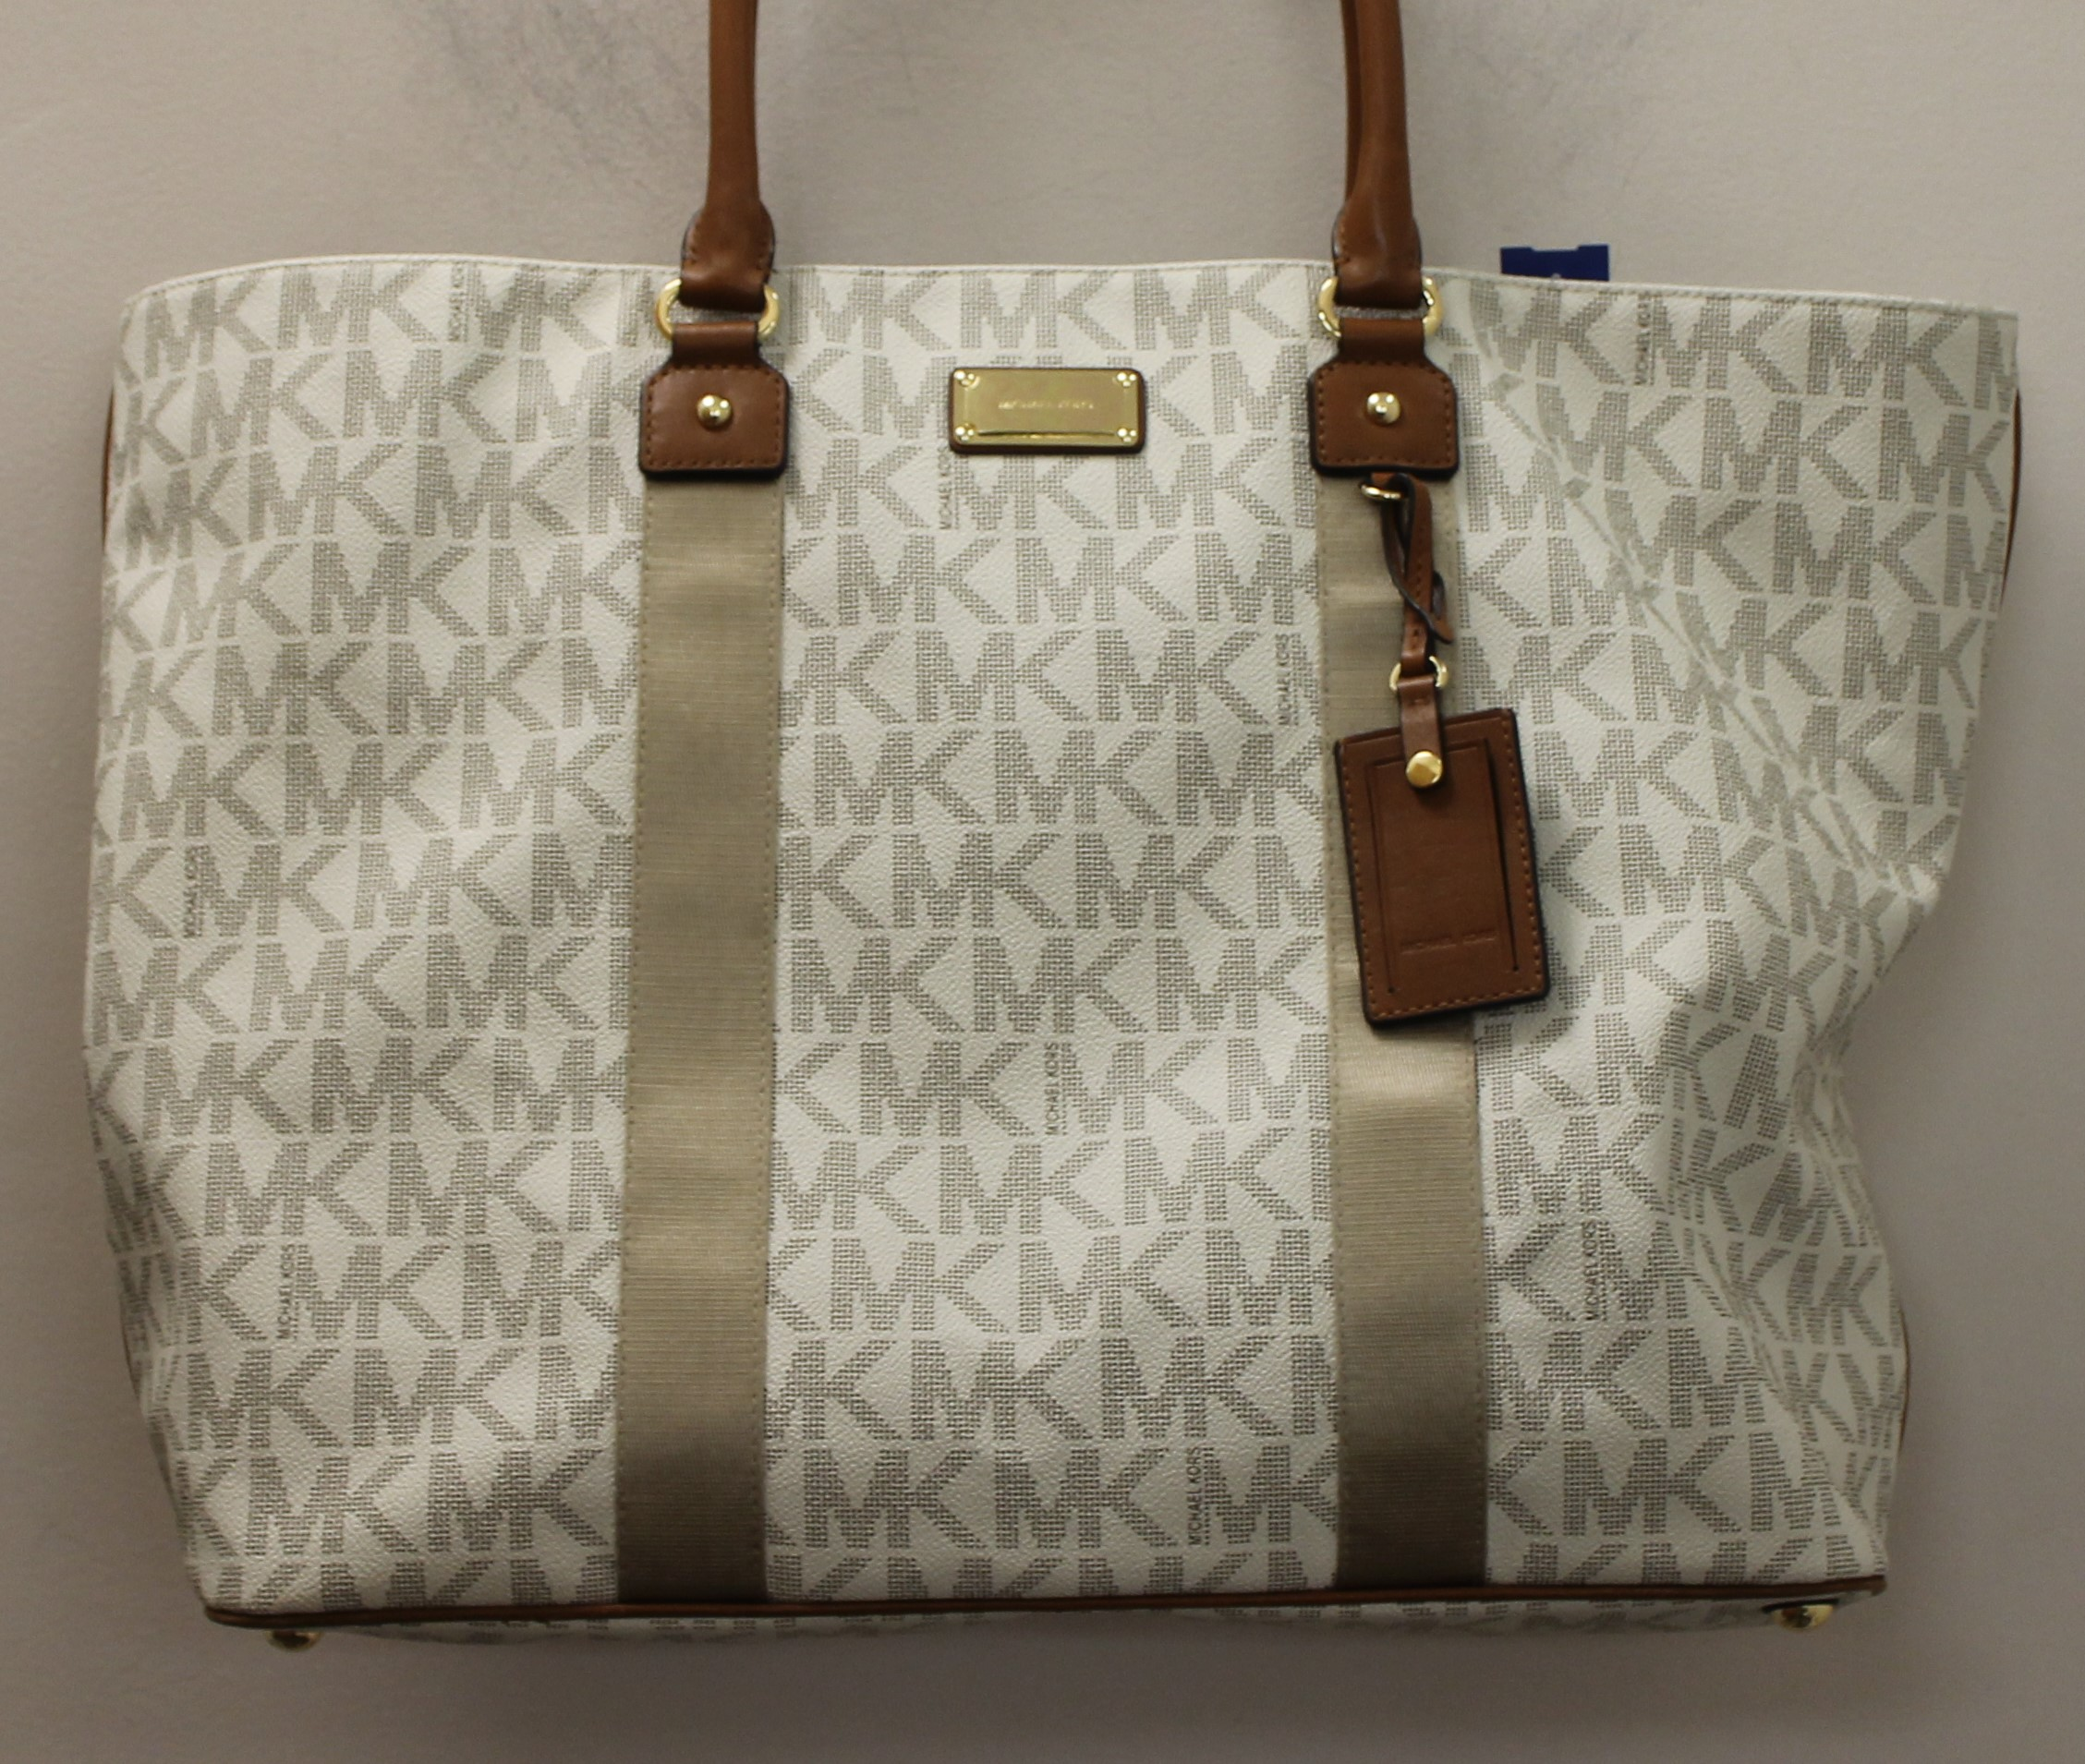 MICHAEL-KORS-WHITE-BROWN-GRAY-LEATHER-AND-CANVAS-LOGO-TOTE_69120I.jpg